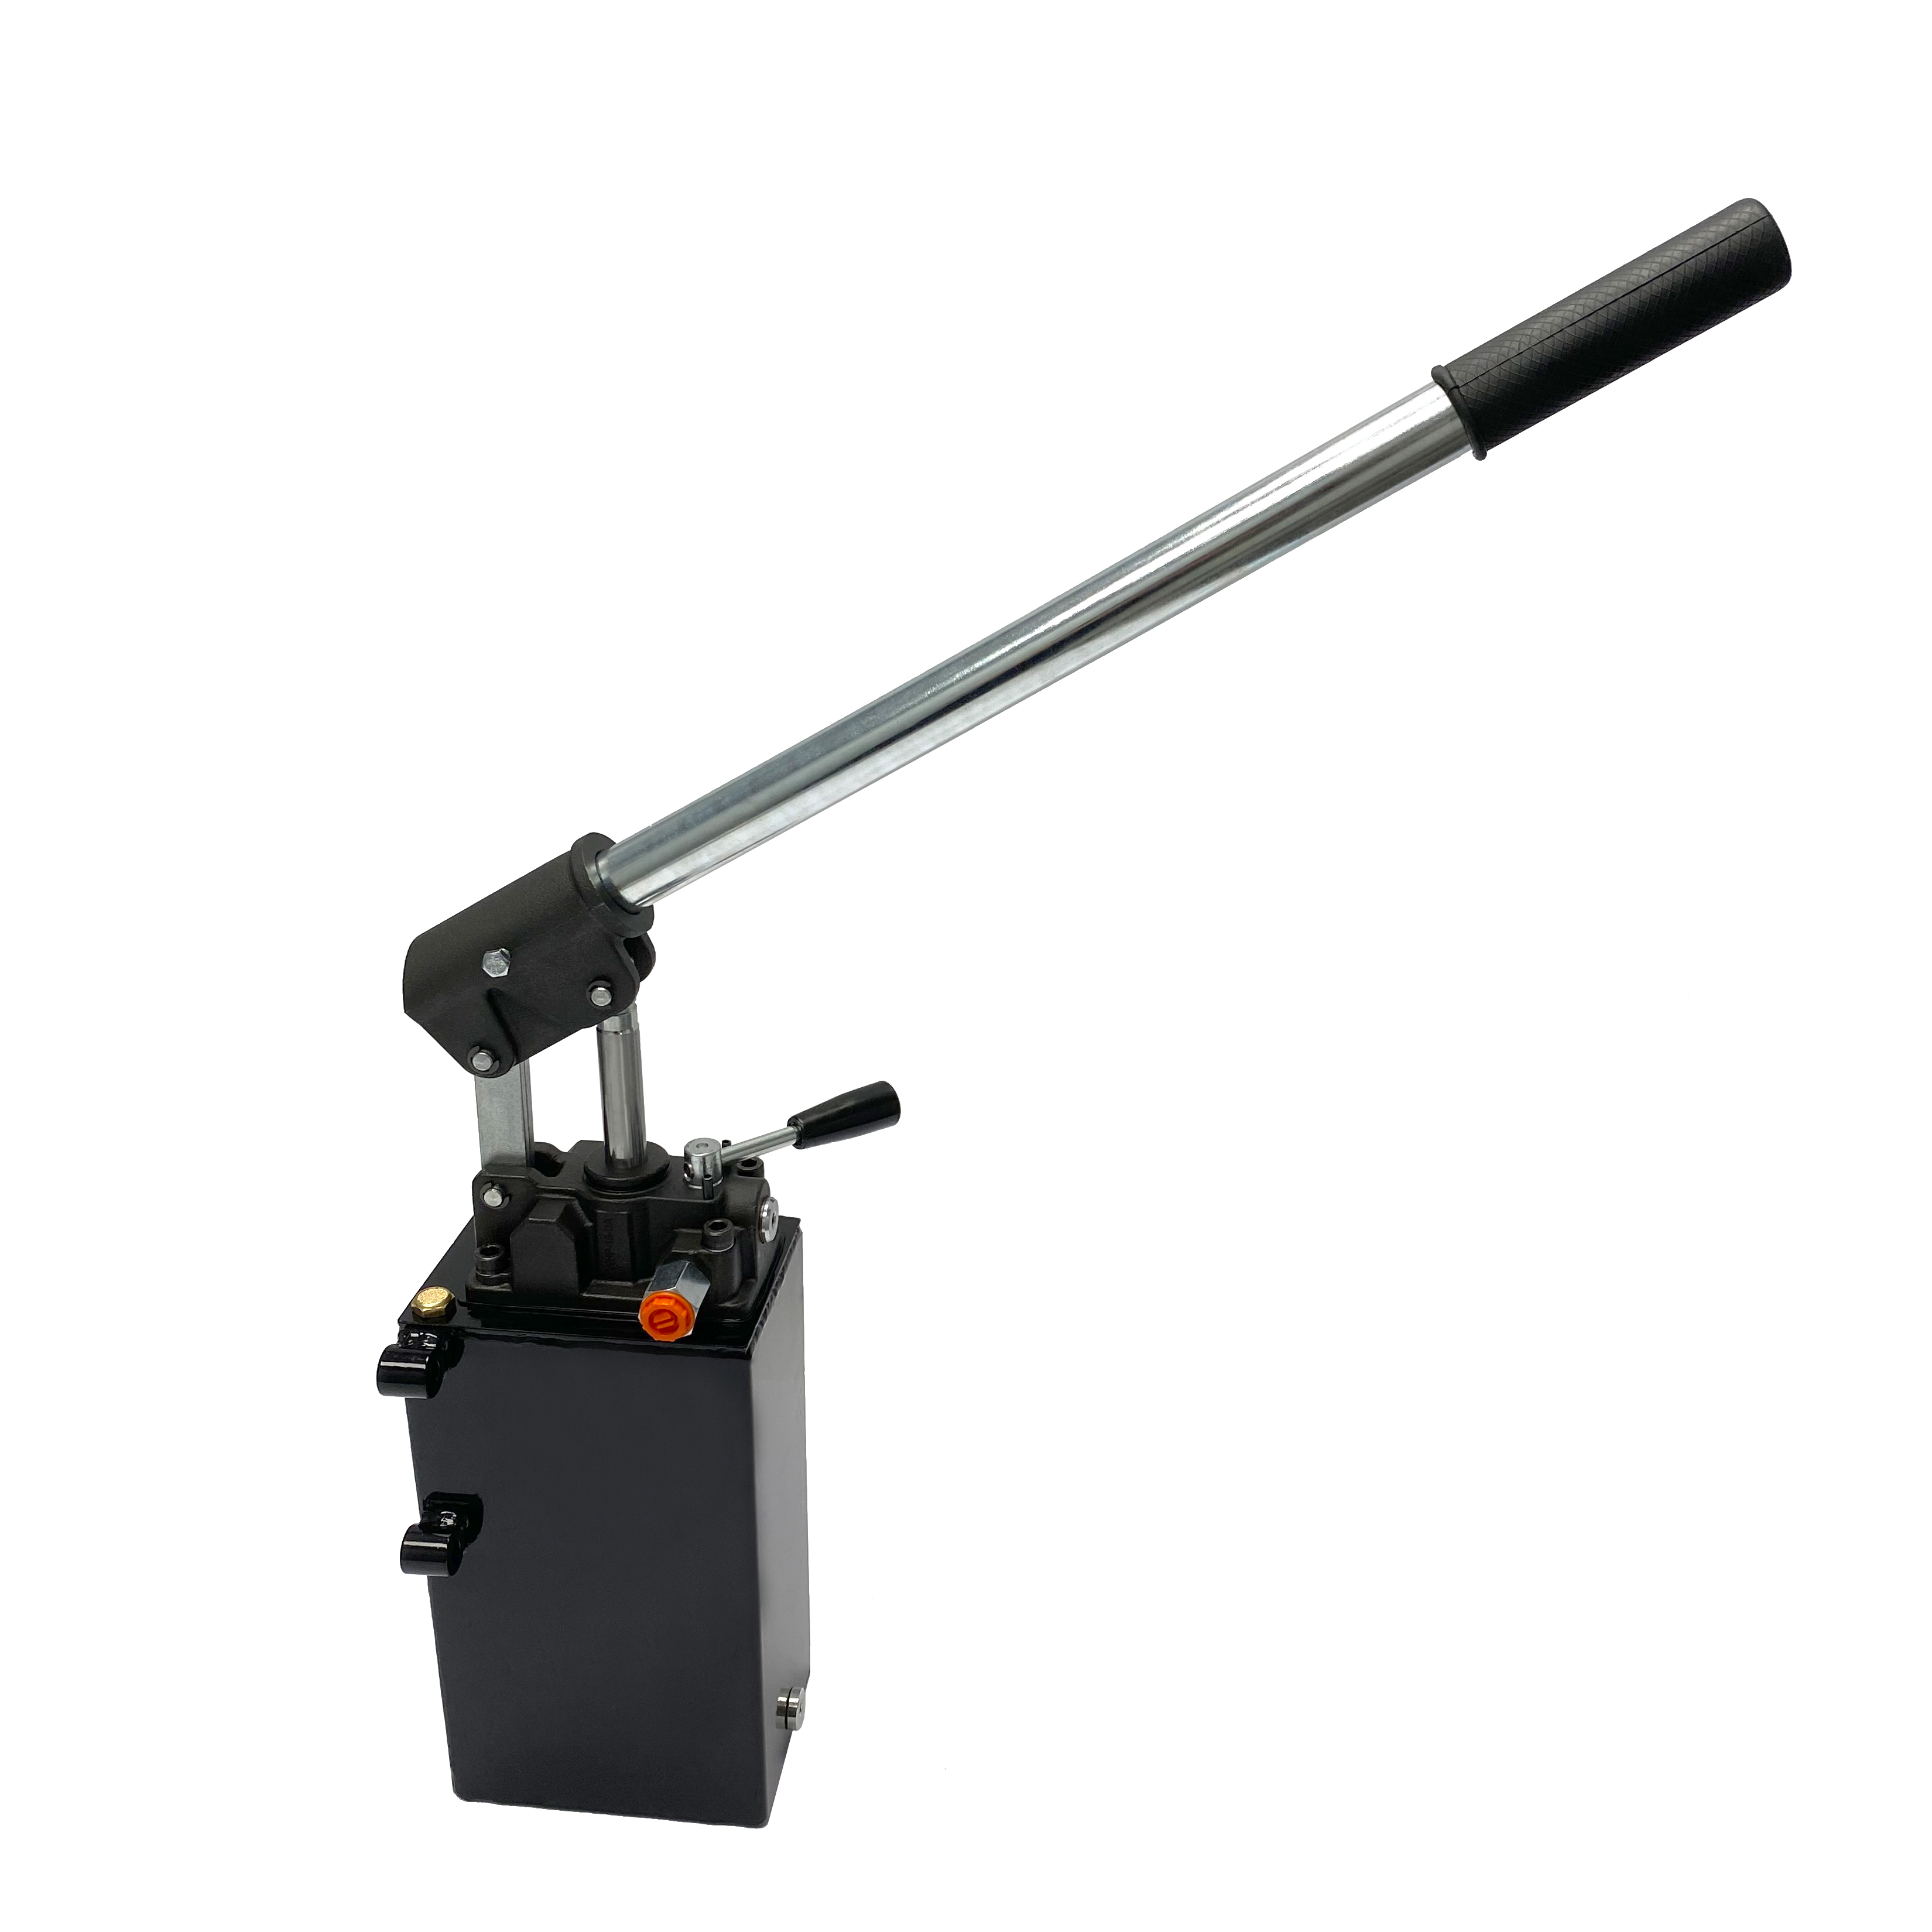 Hydraulic piston hand pump with double acting changeover valve for double acting cylinder 1.5 CID with 3 quart steel tank by Hydro-Pack | Magister Hydraulics